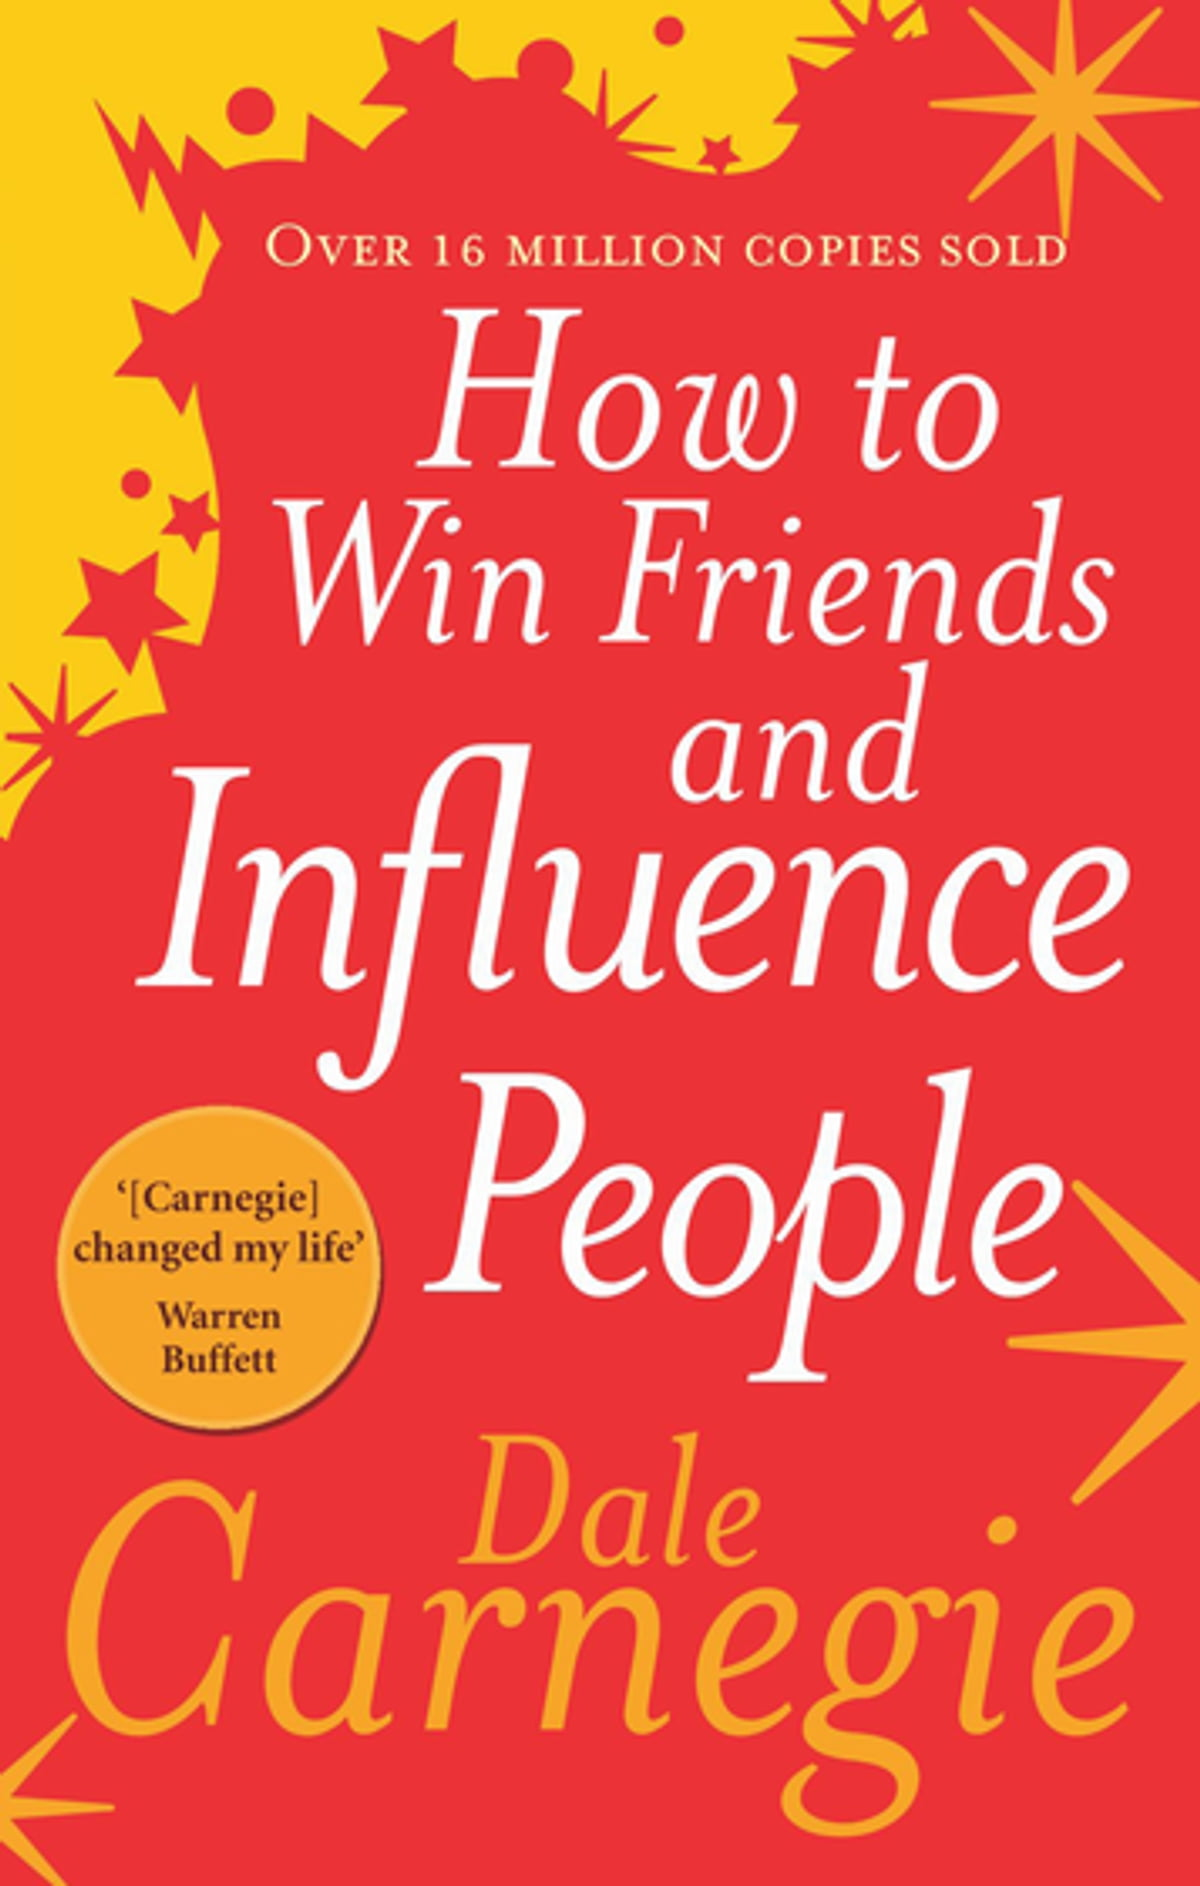 And how friends influence win people to